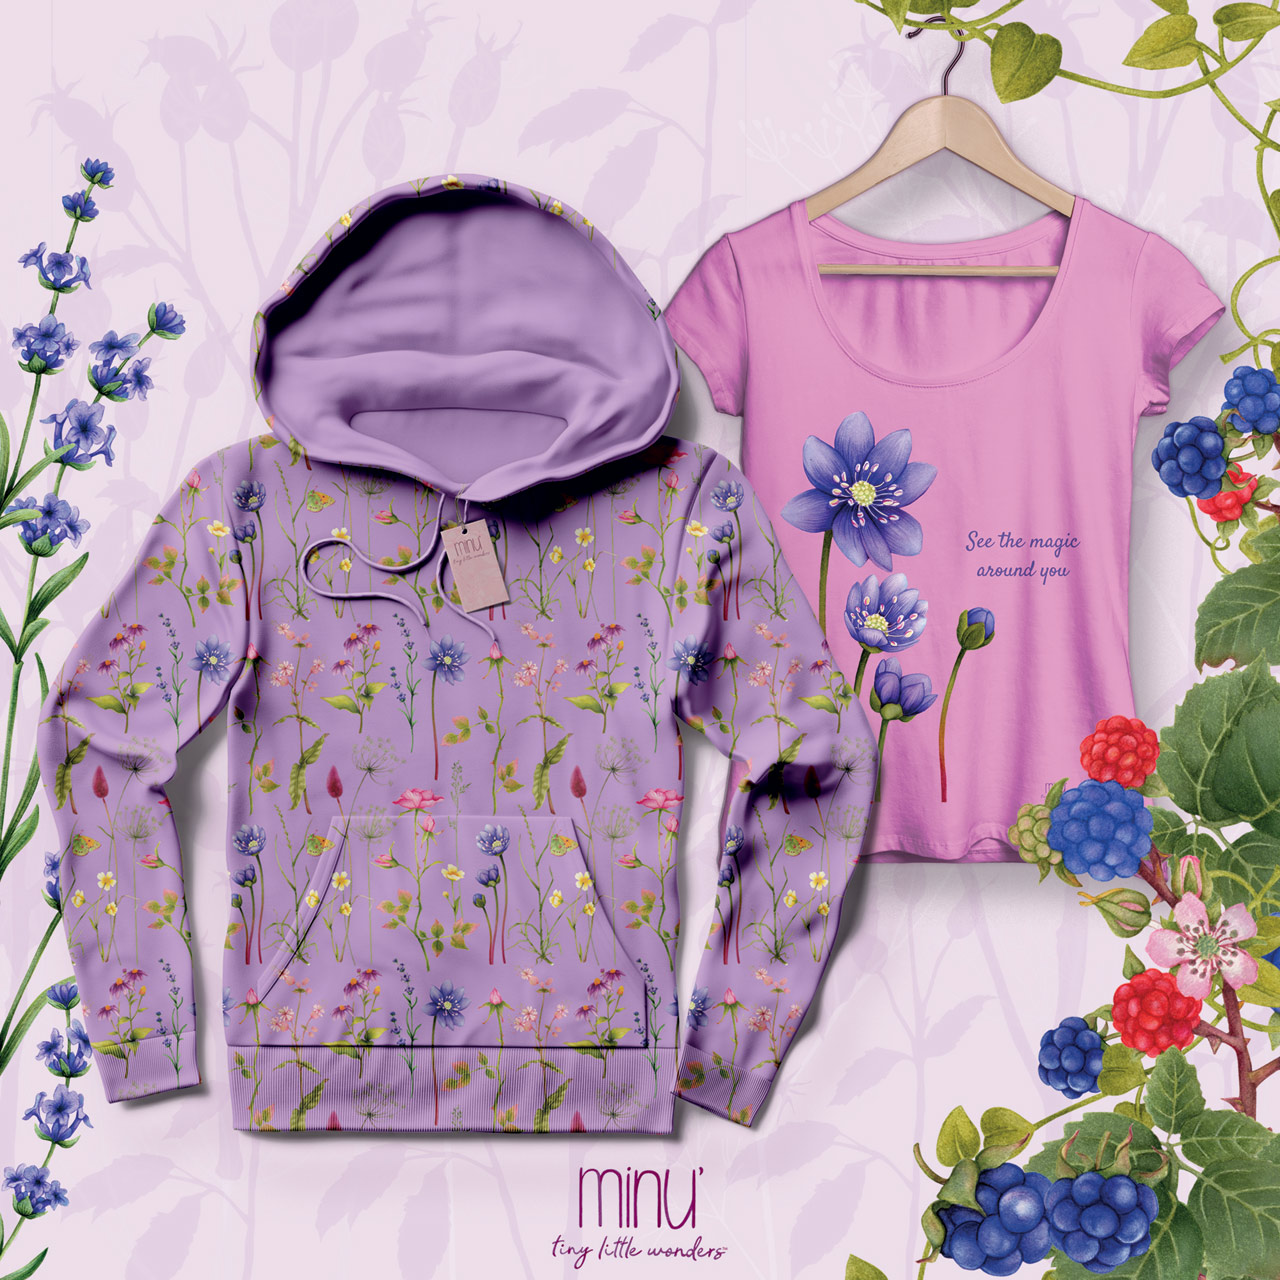 Yume nature lifestyle collections